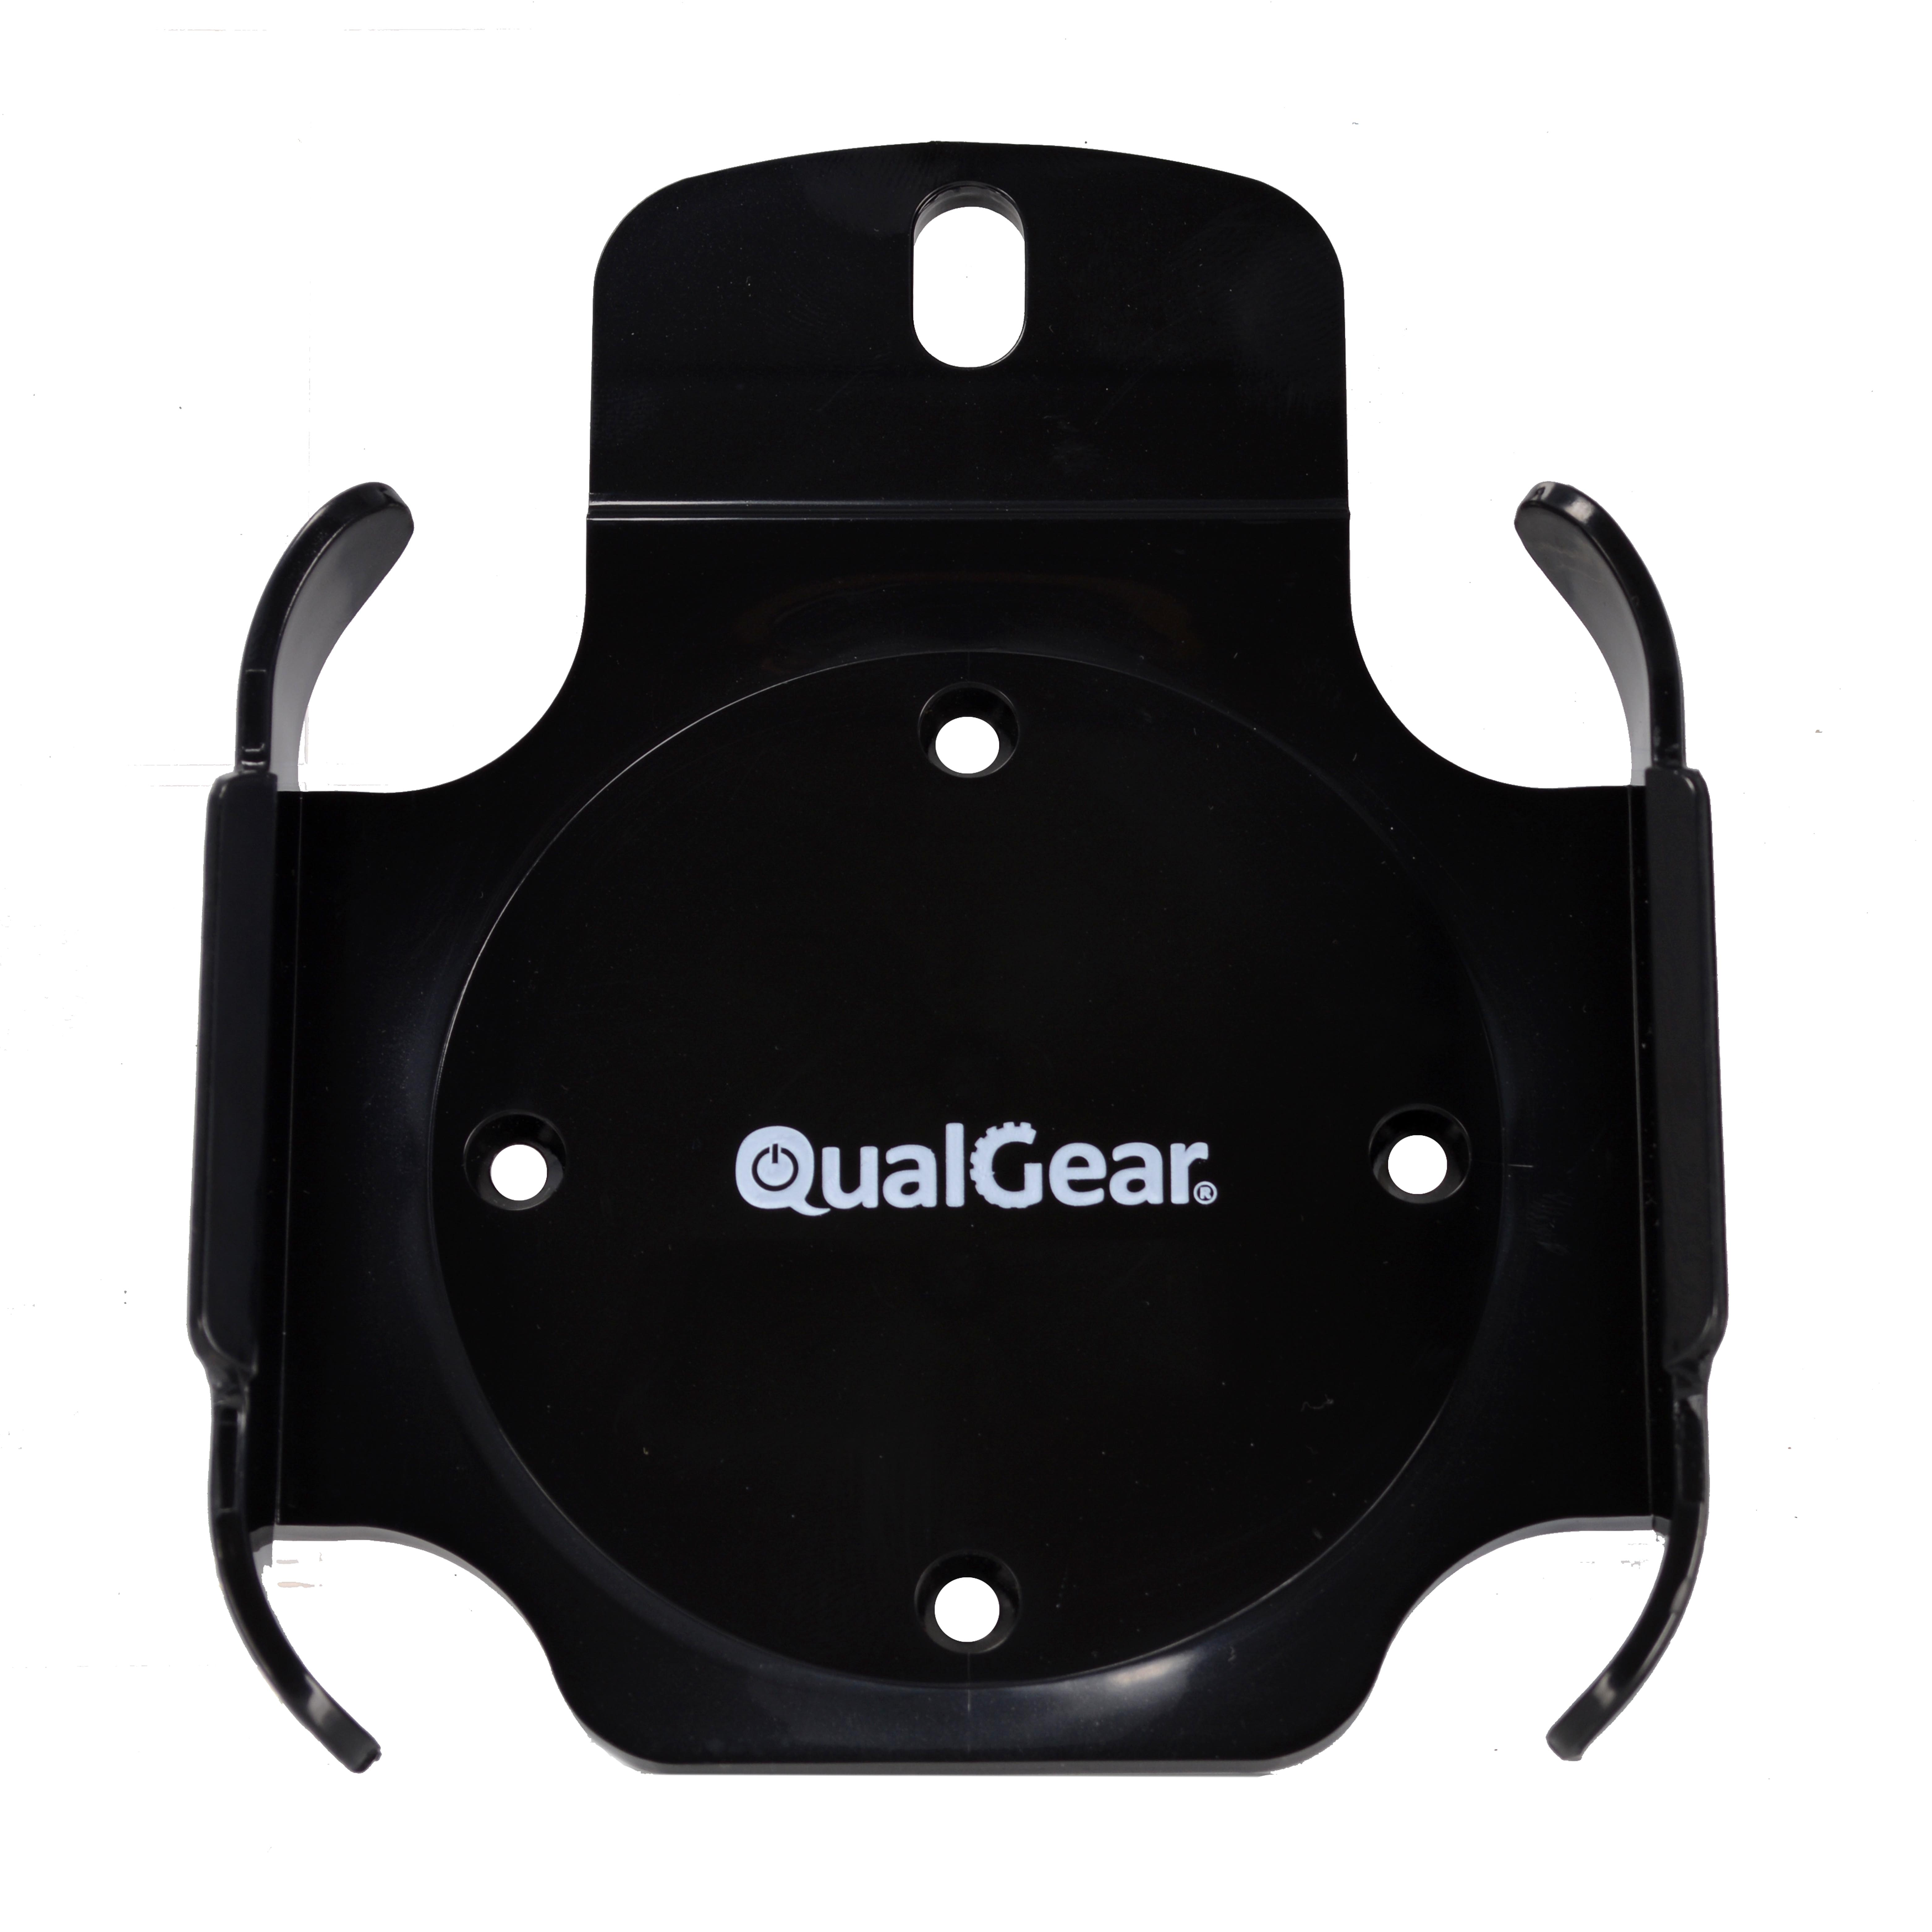 QualGear� QG-AM-017 Mount for Apple TV/AirPort Express Base Station (For 2nd & 3rd Generation Apple TVs)